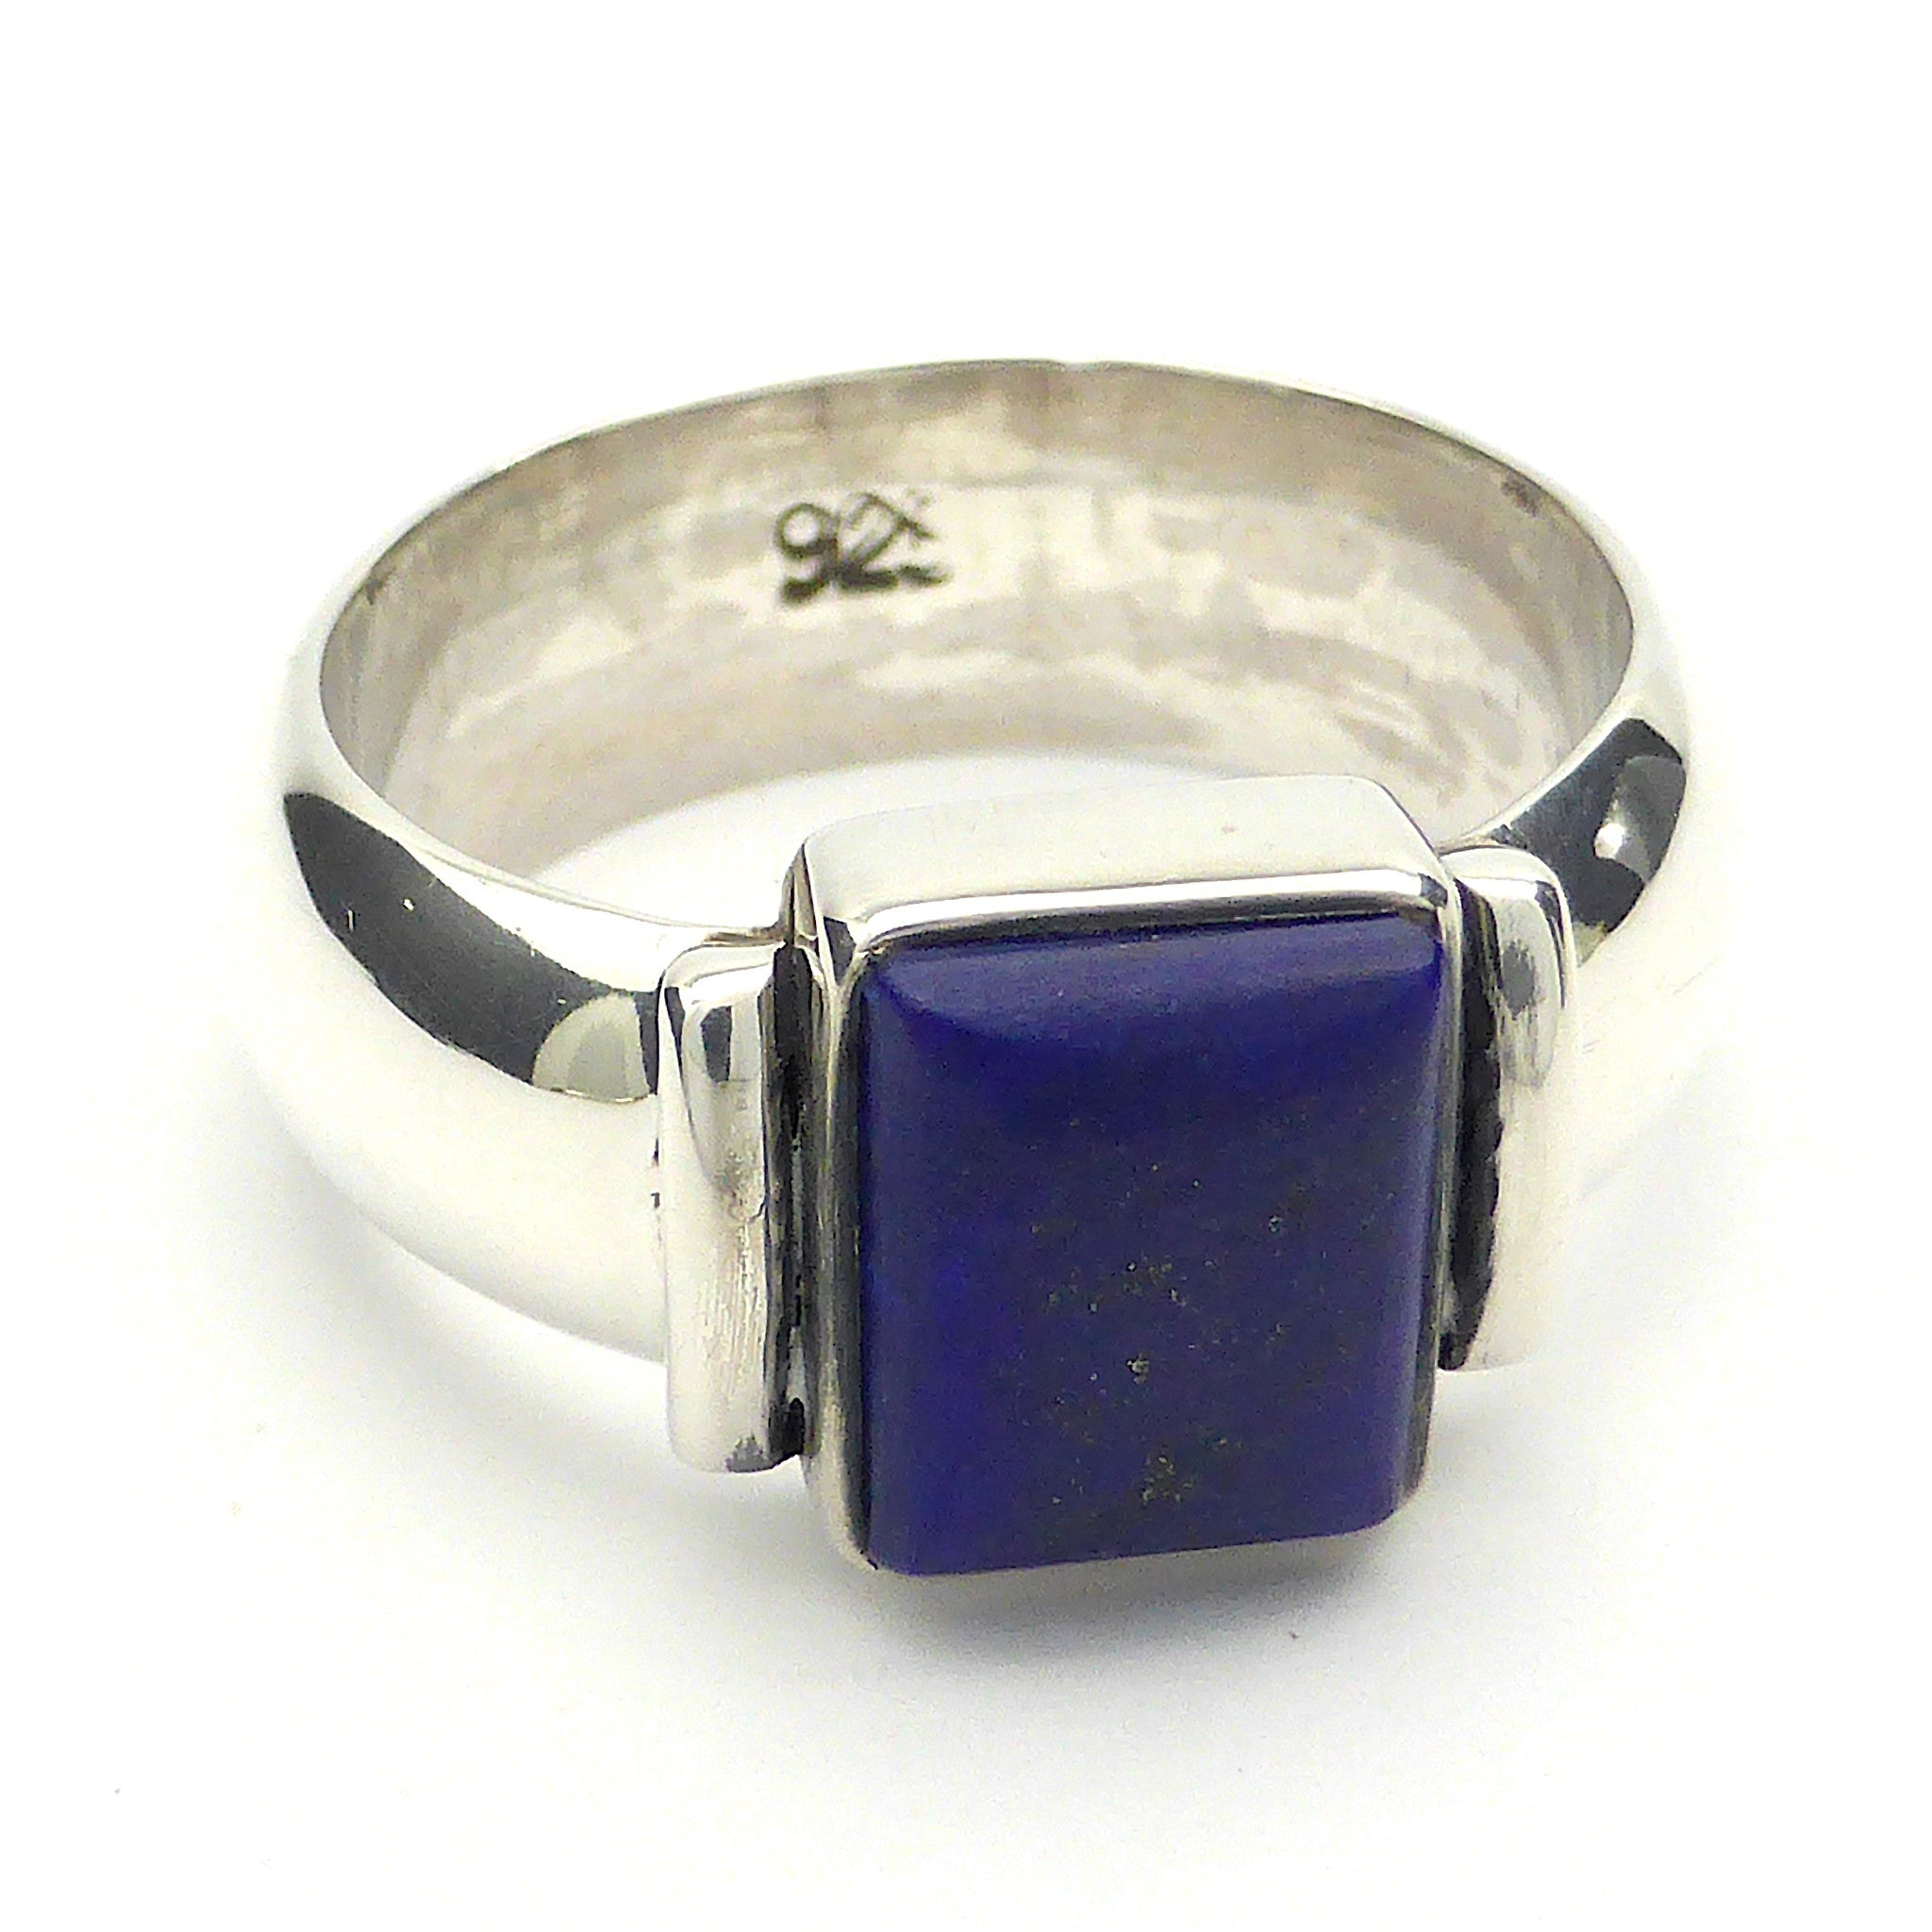 Lapis Lazuli Ring, wide Band, 925 Silver, mj